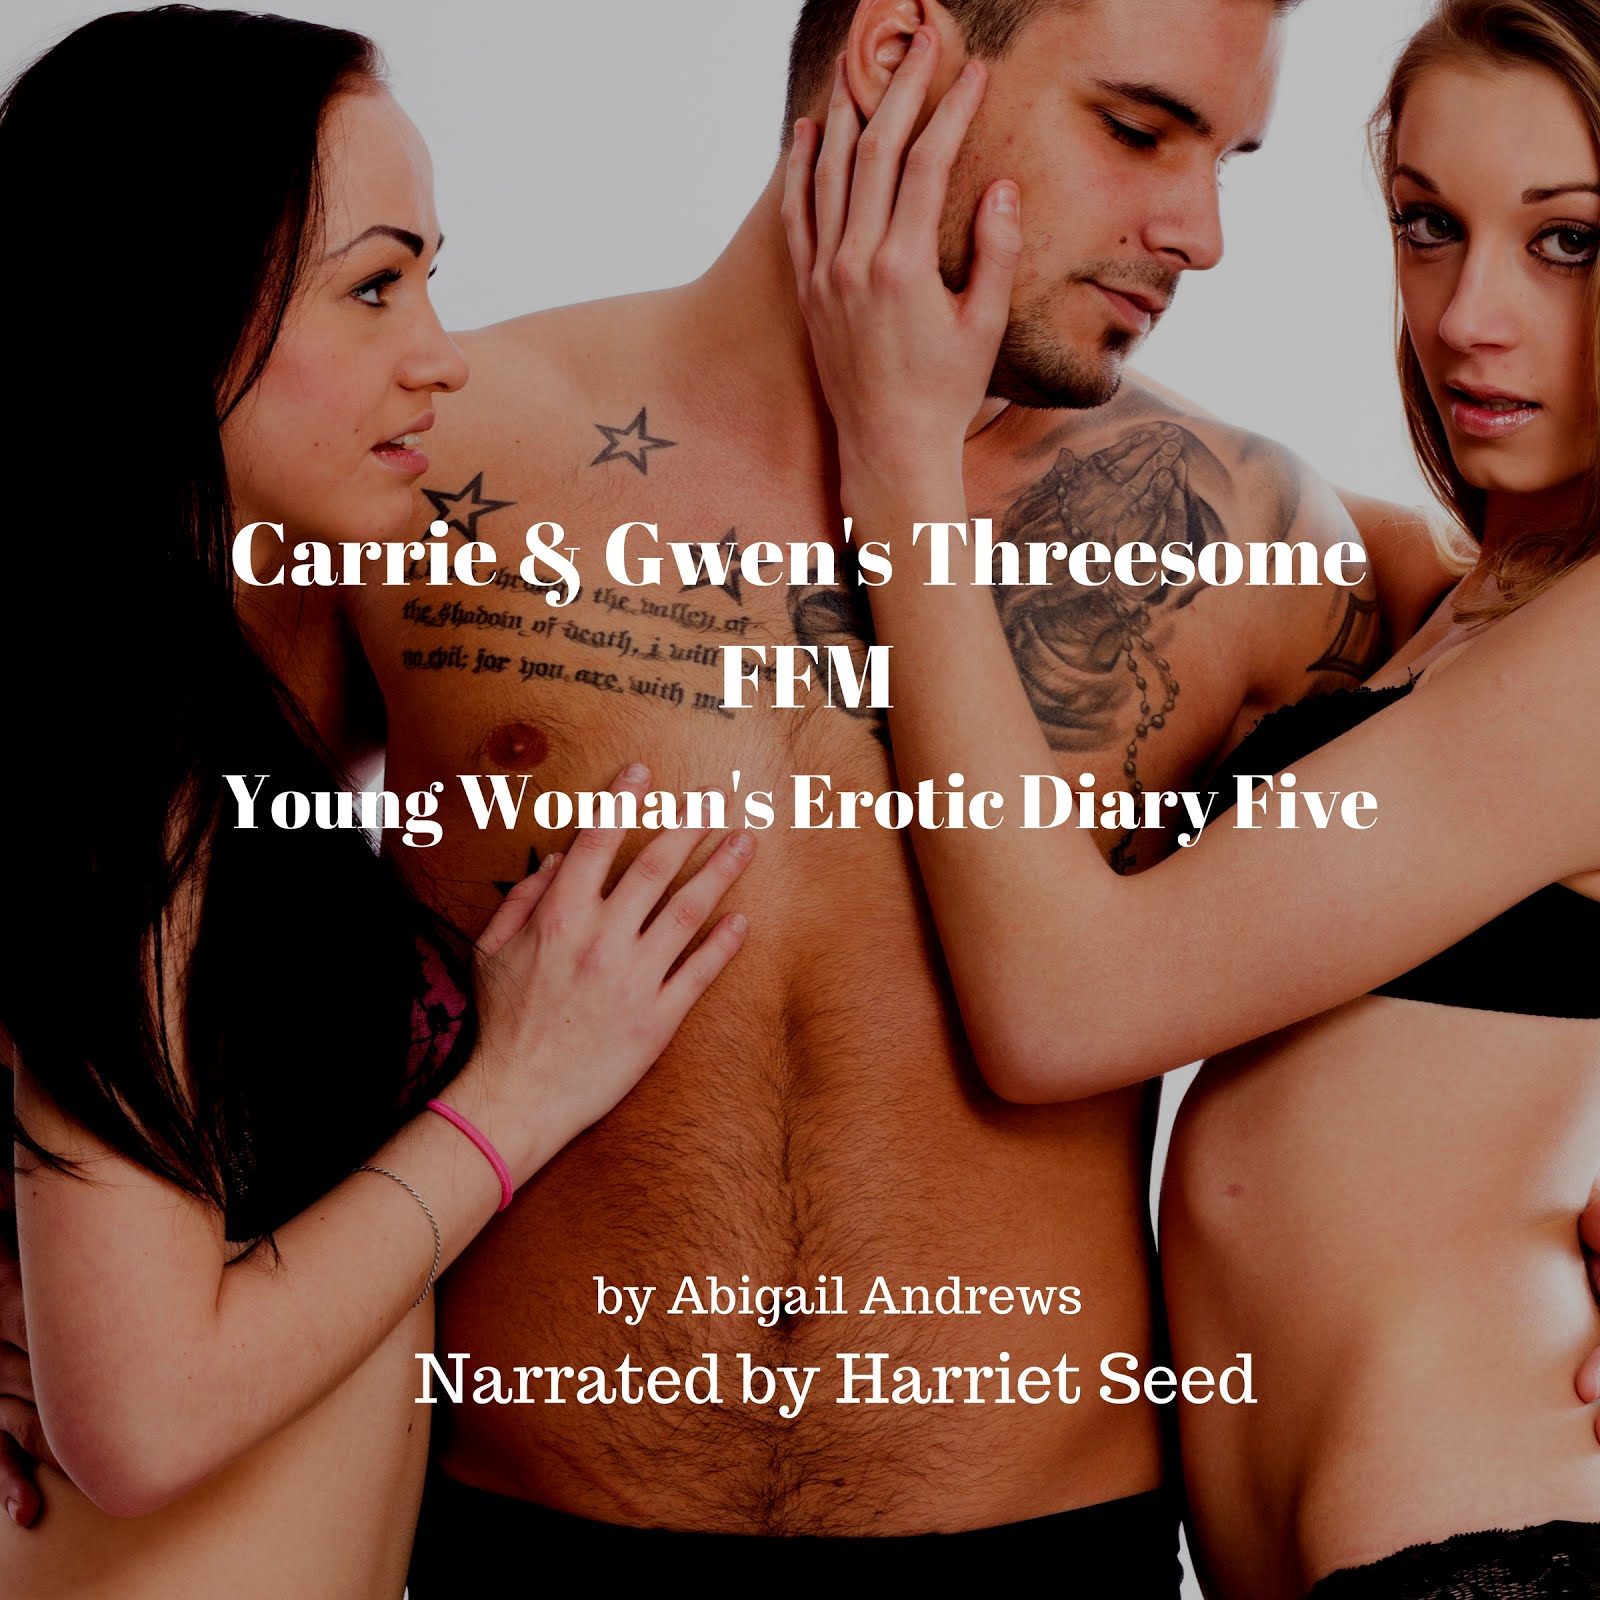 Carrie and Gwen's Threesome